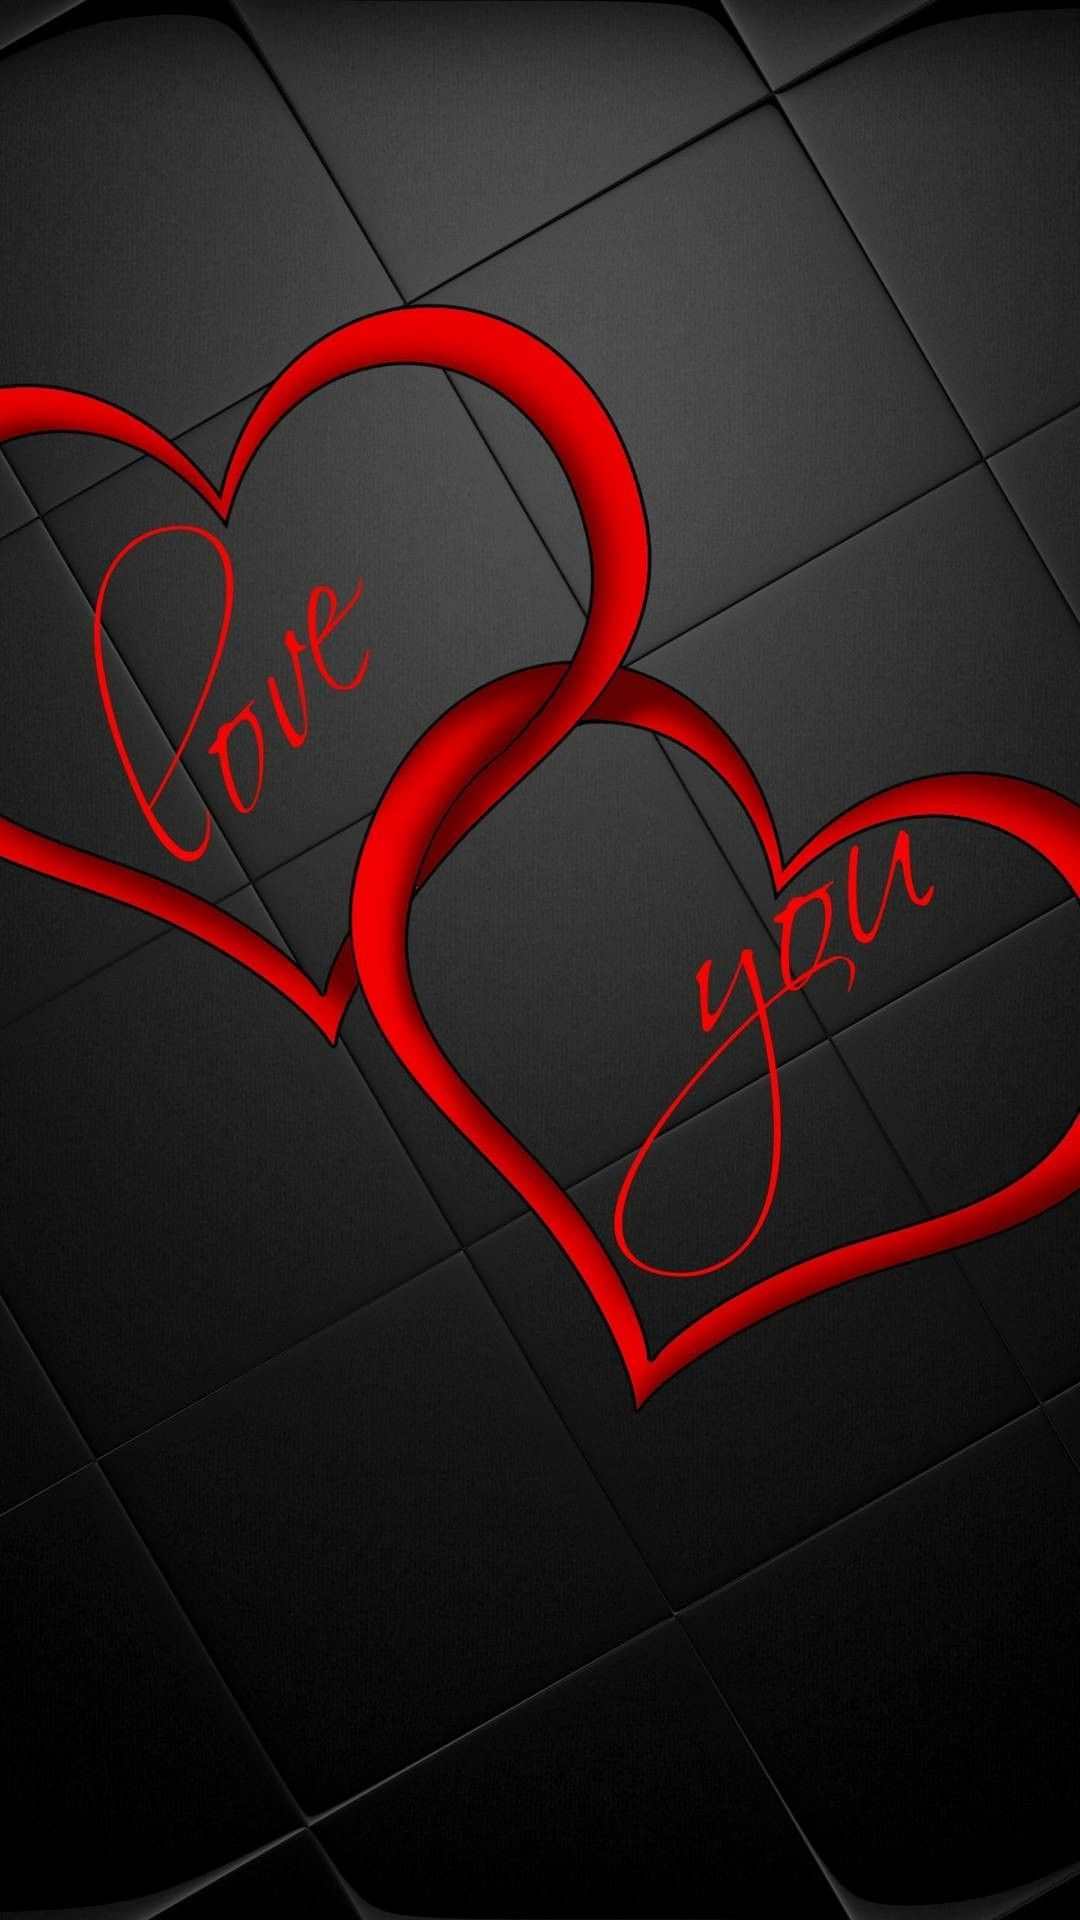 Love u hearts hearts of love Cellphone wallpaper Heart 1080x1920